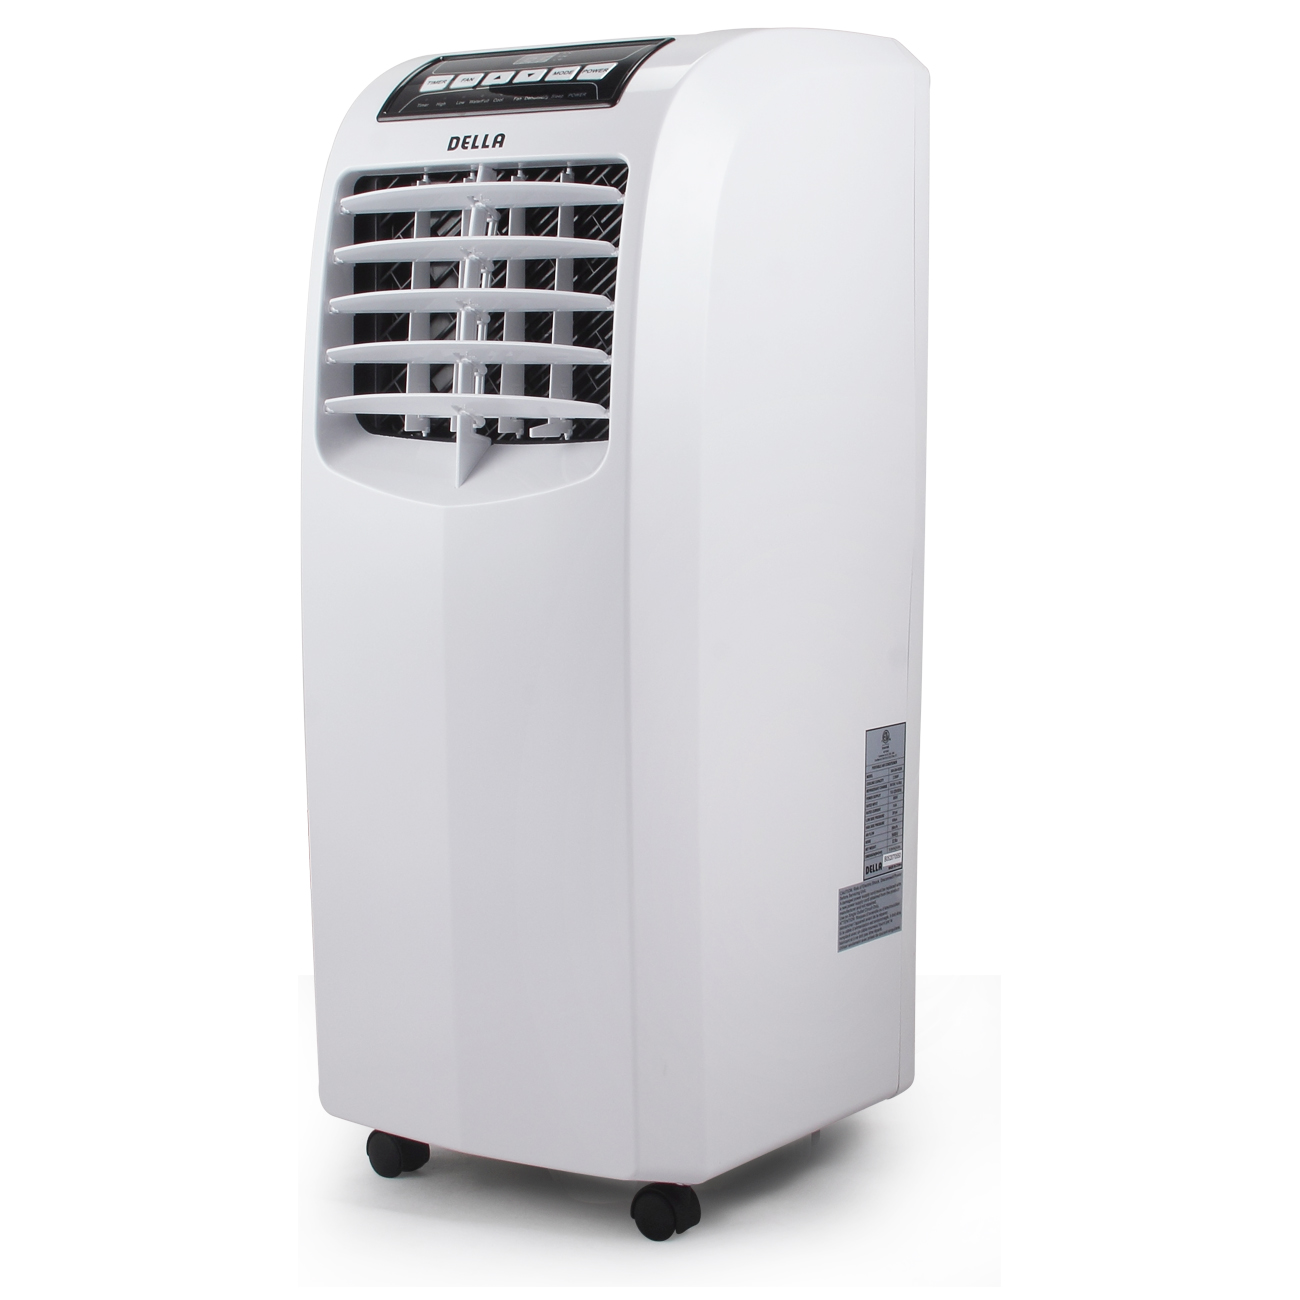 #5D646E 8 000 BTU Portable Air Conditioner And Dehumidifier  2017 13612 Portable Dehumidifier Air Conditioner photo with 1300x1300 px on helpvideos.info - Air Conditioners, Air Coolers and more